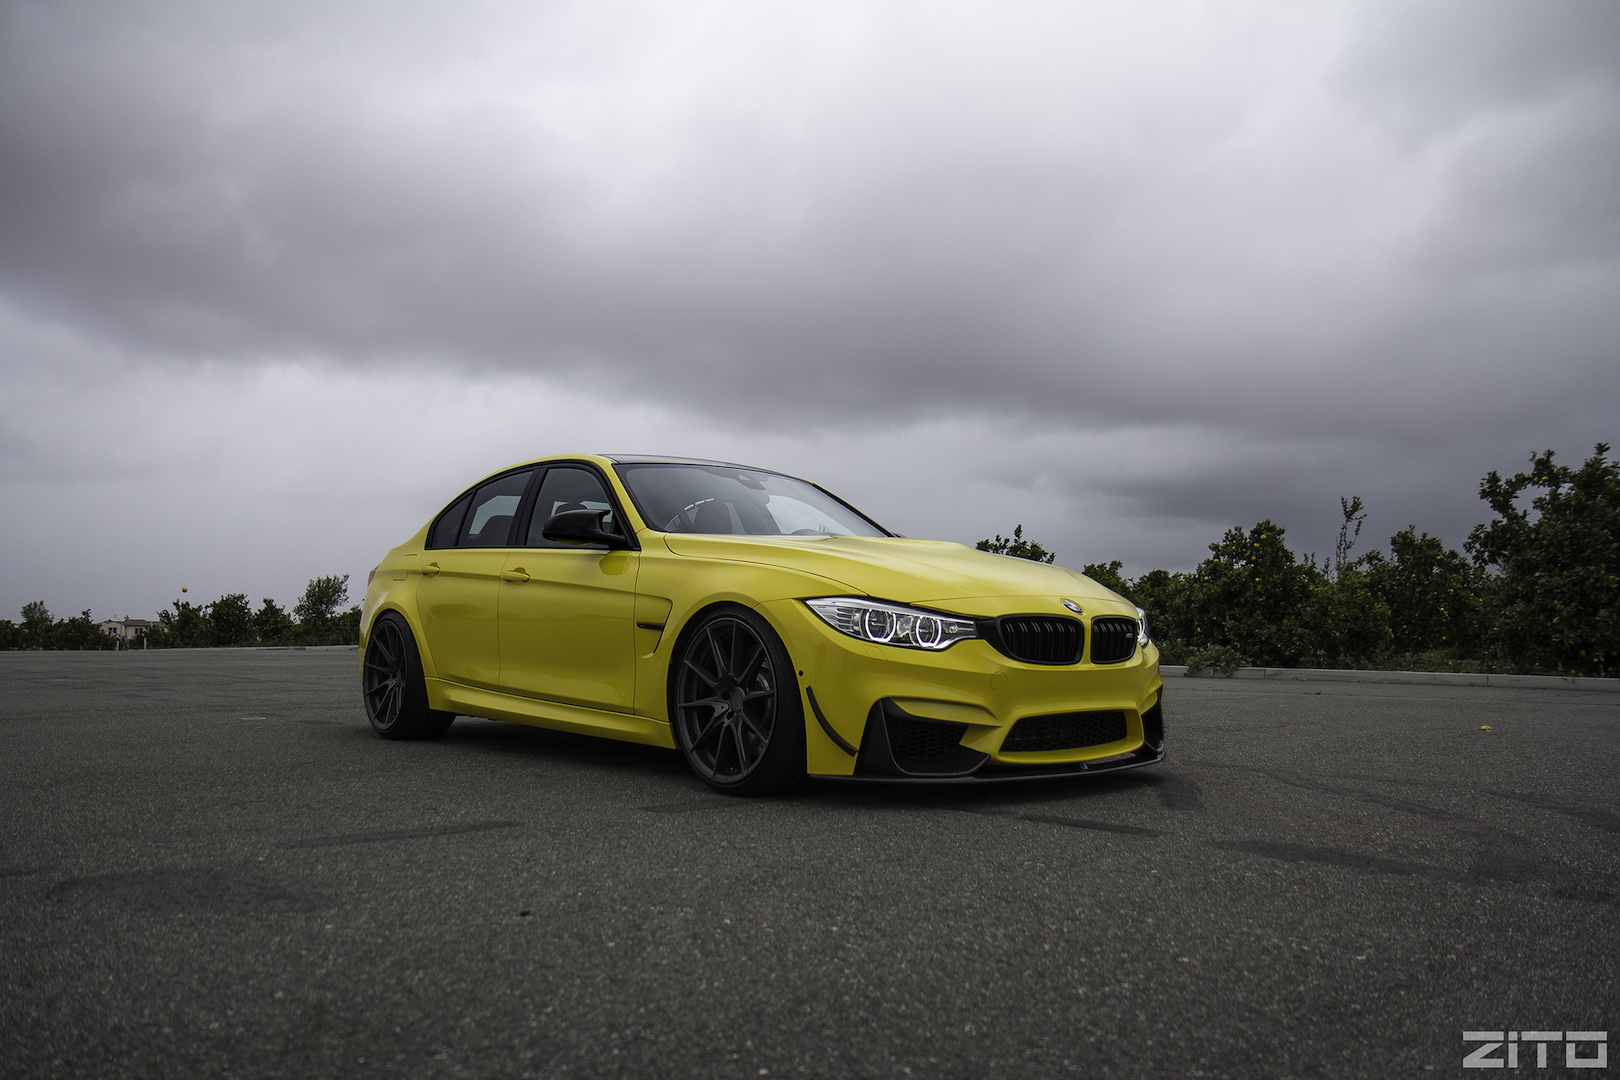 BMW F80 M3 Yellow ZF03